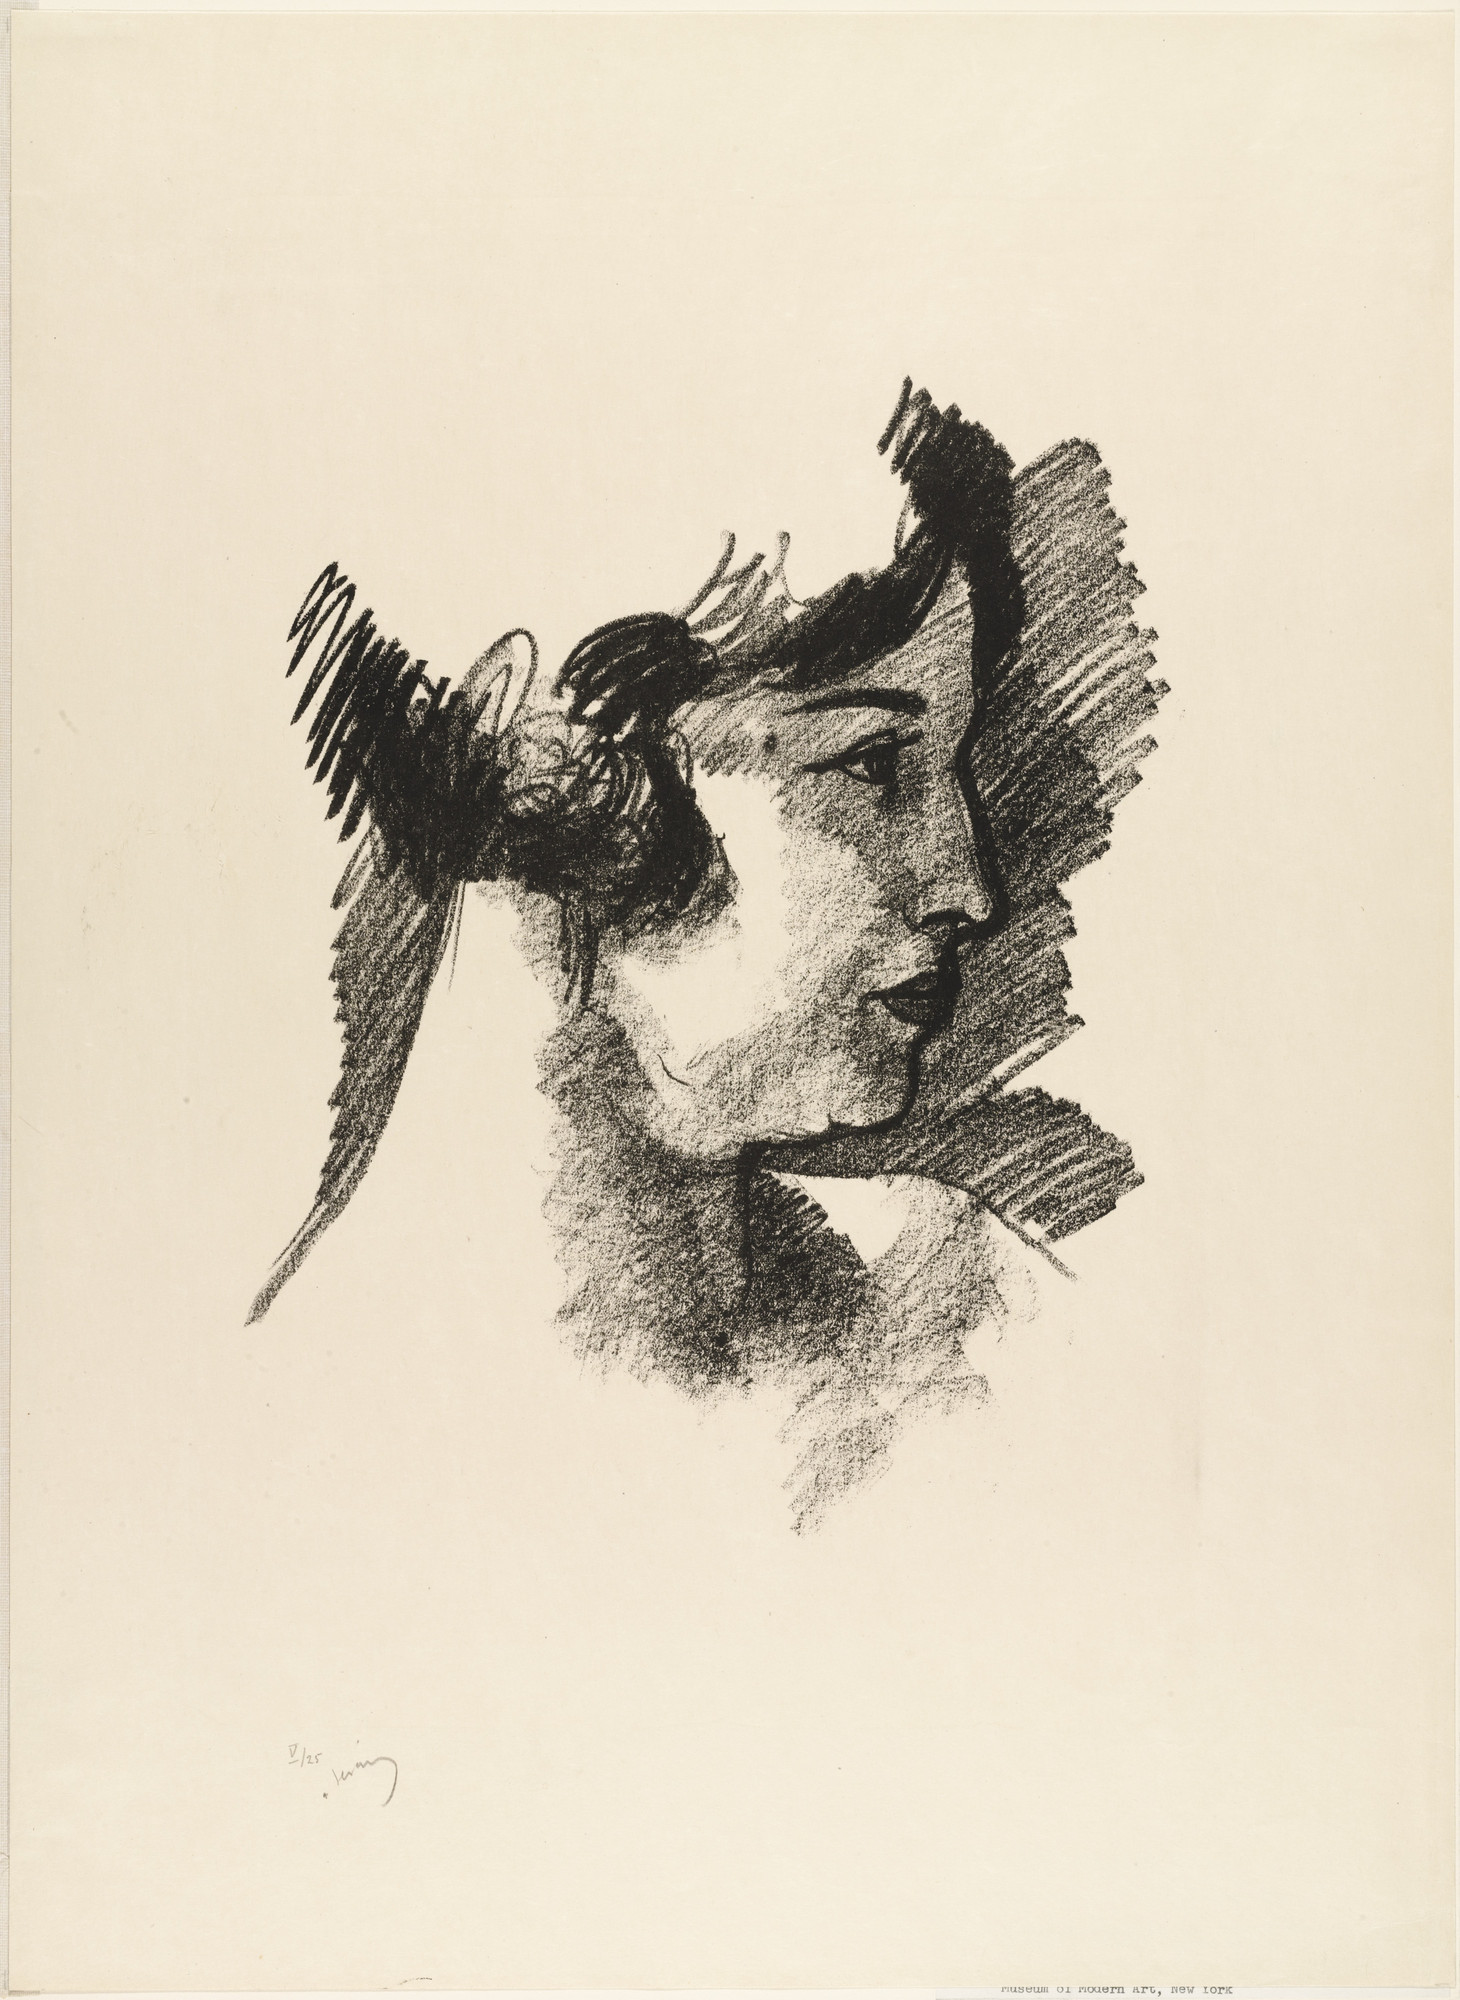 André Derain. Head of a Woman in Profile from the portfolio Metamorphoses. (1927)